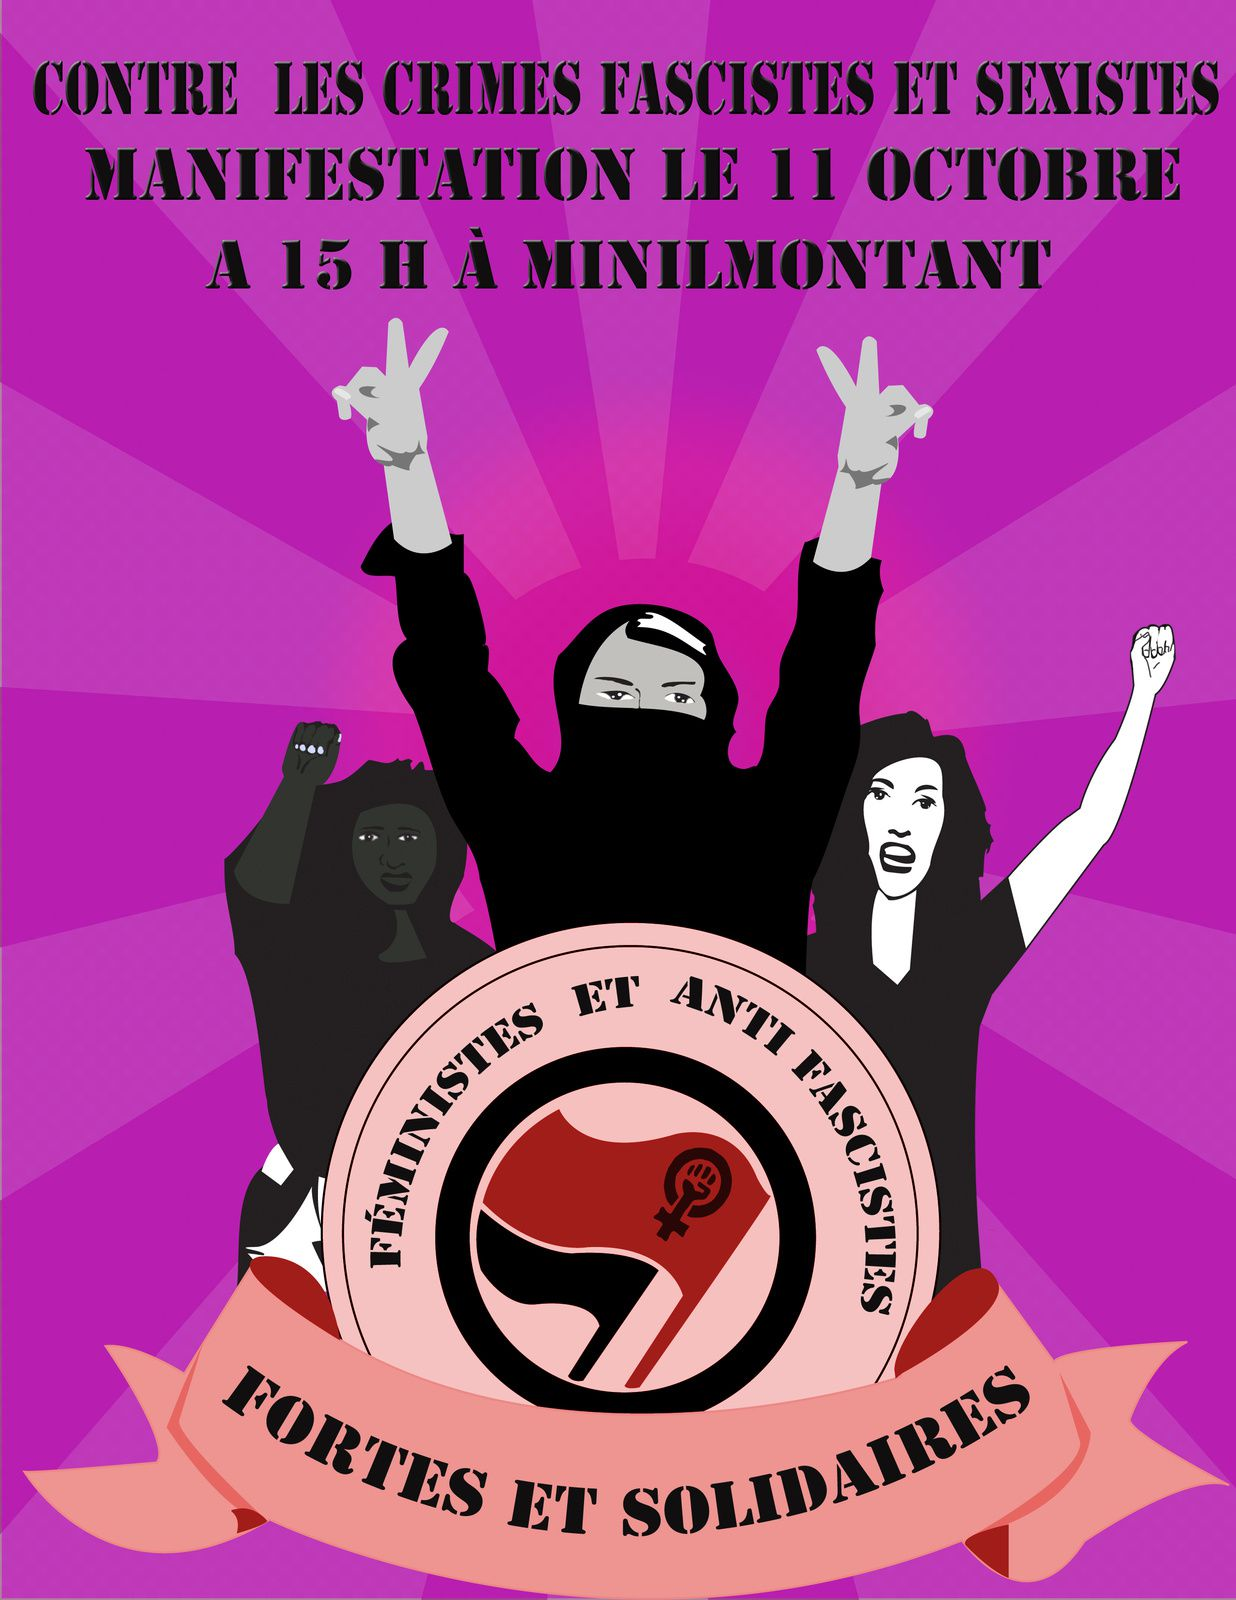 Déclaration de l'OCFR suite à la manifestation du 11 Octobre à Paris